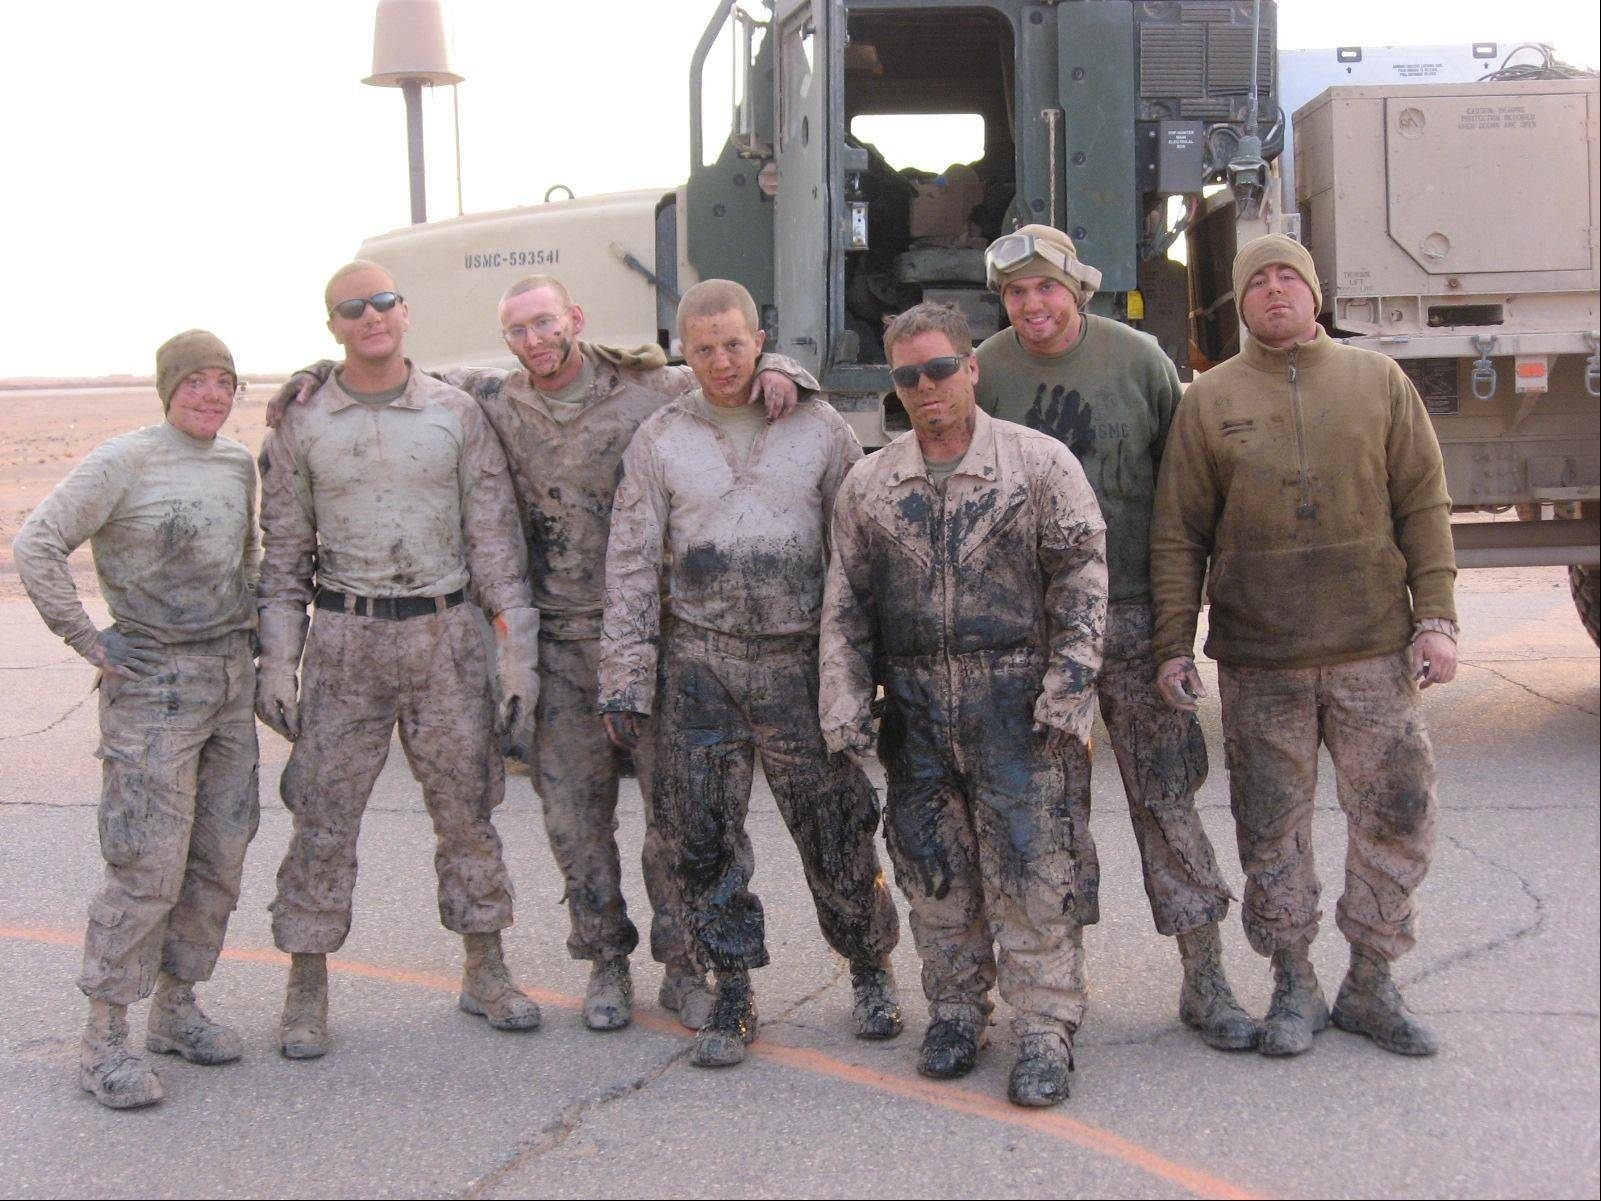 Hoffman Estates native Justin Sher, second from left, and his fellow Marines get dirty repairing broken runways to be combat-ready in northern Iraq. The mission was in a desolate area with no showers and few supplies, so the group brought with them items they received in care packages from the Yellow Ribbon Support Group.